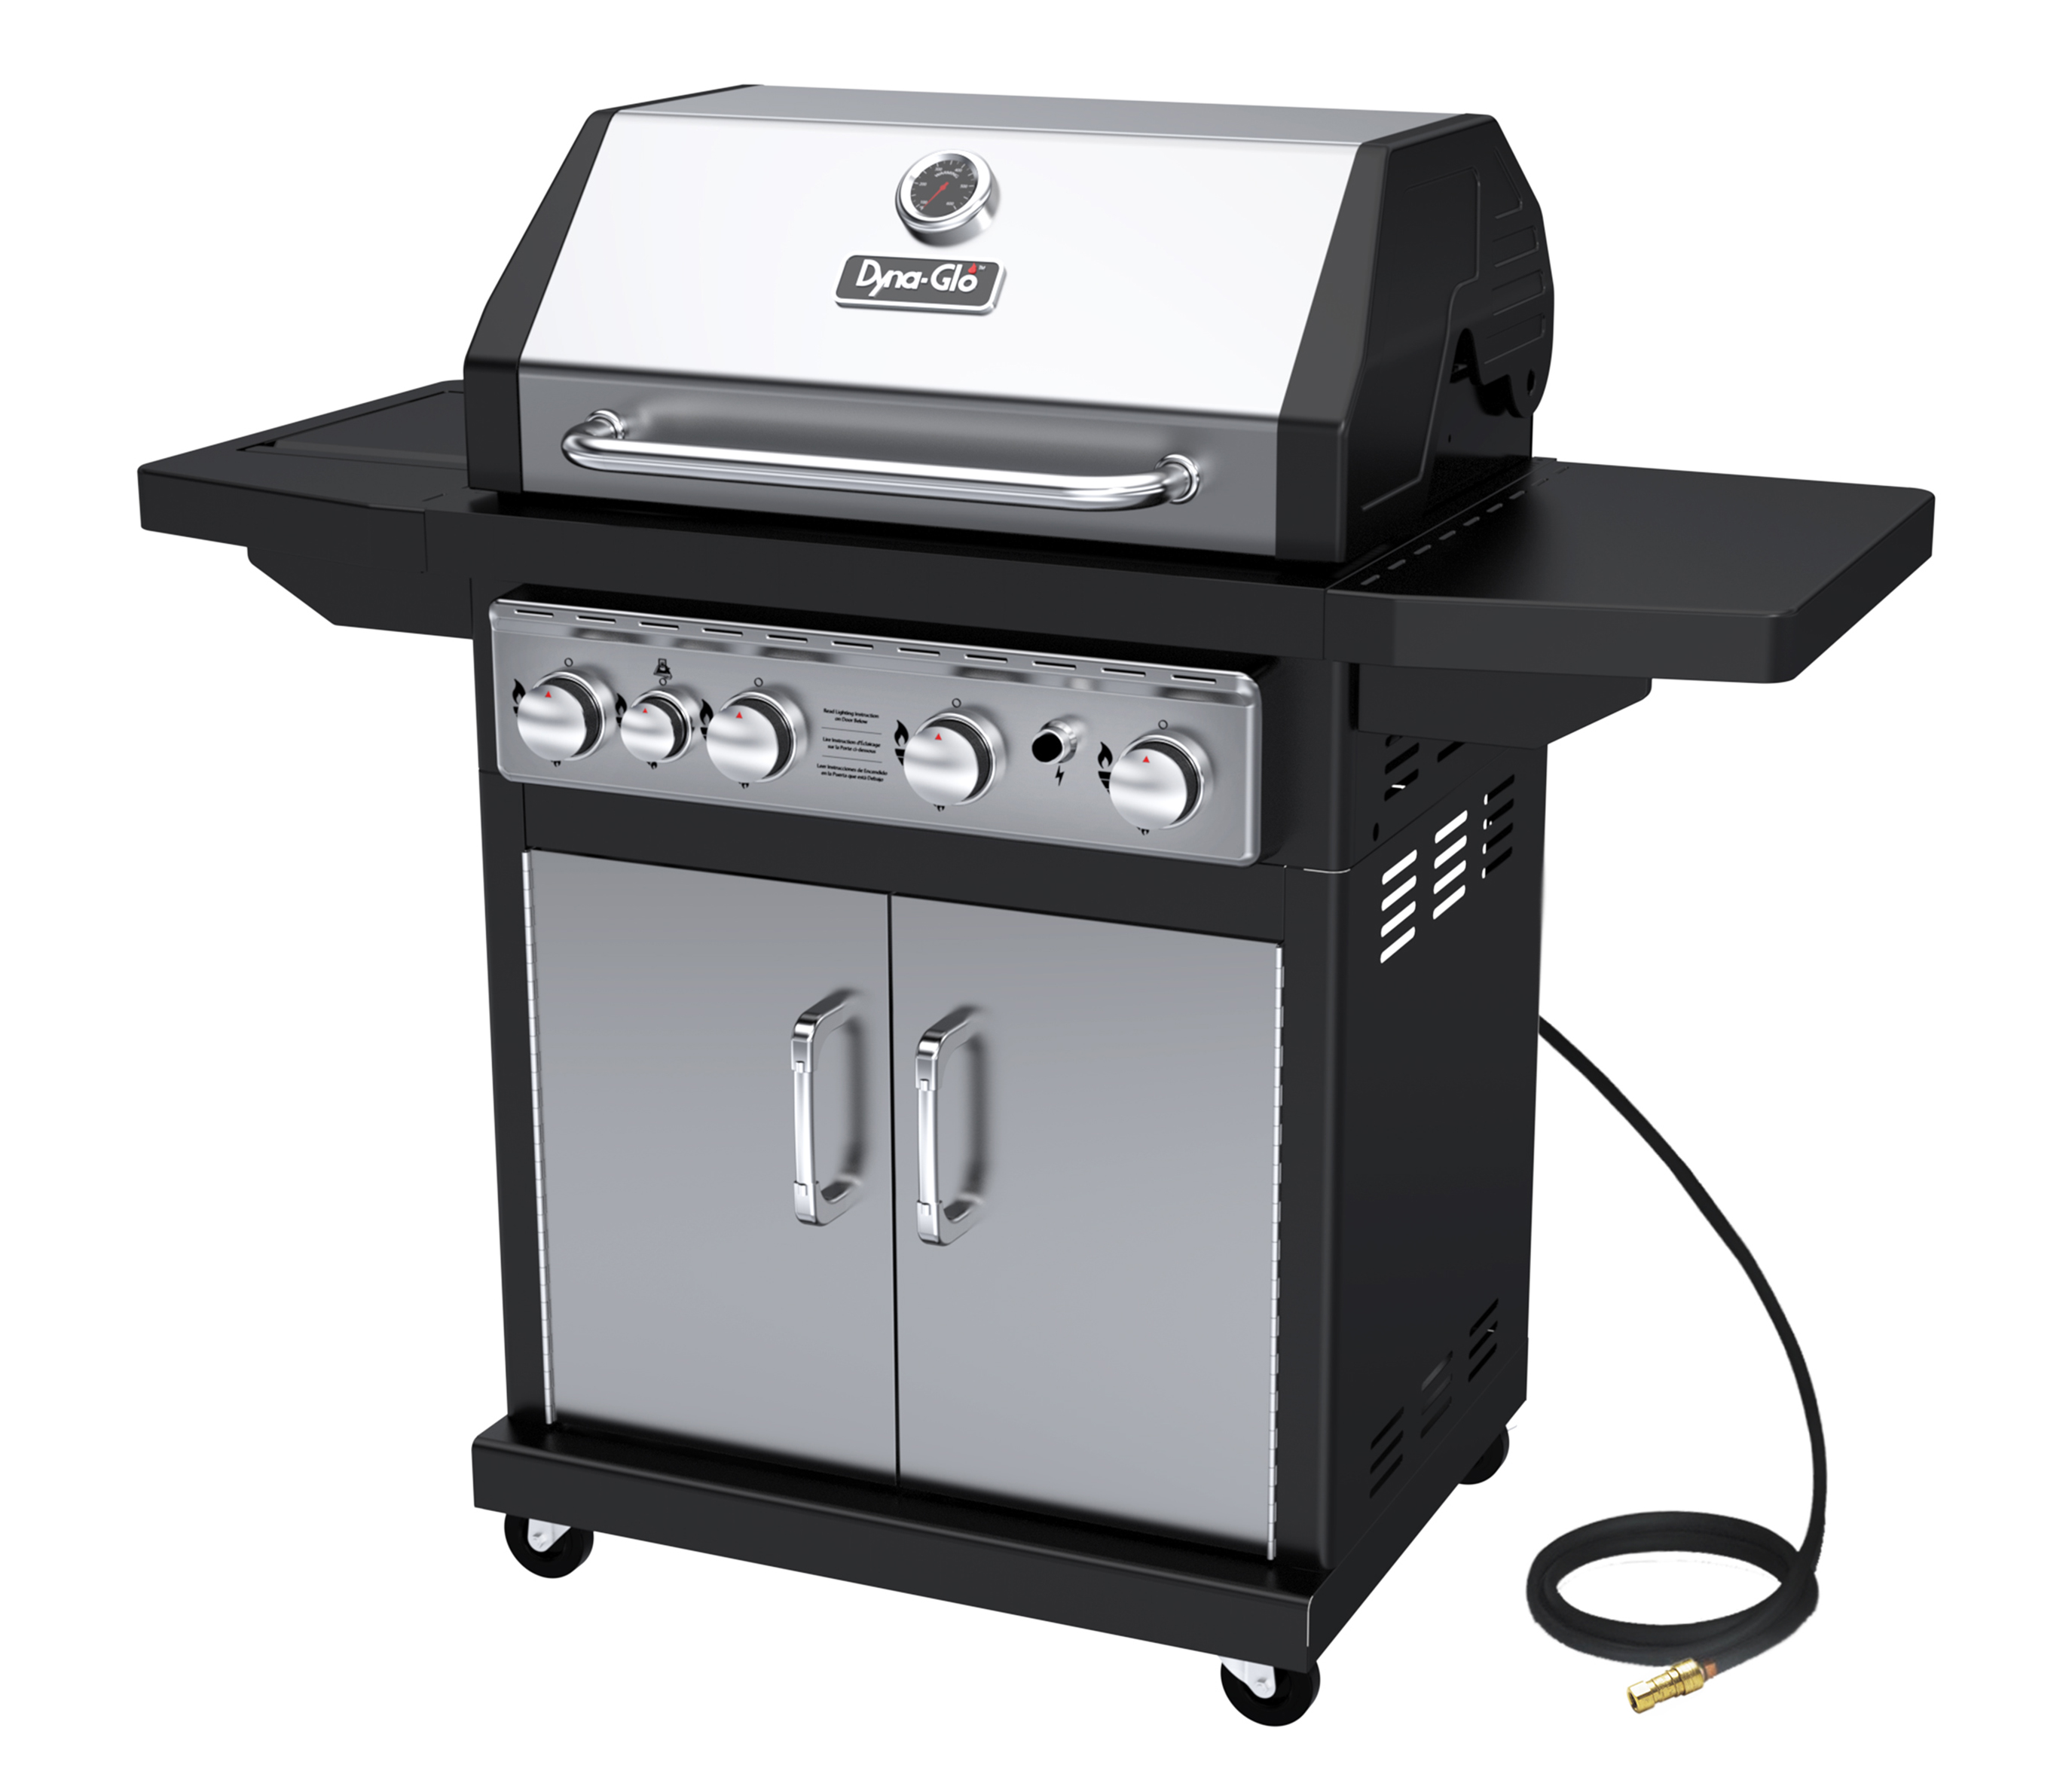 Dyna-Glo DGA480SSN-D 4 Burner Stainless Gas Grill by GHP Group, Inc.